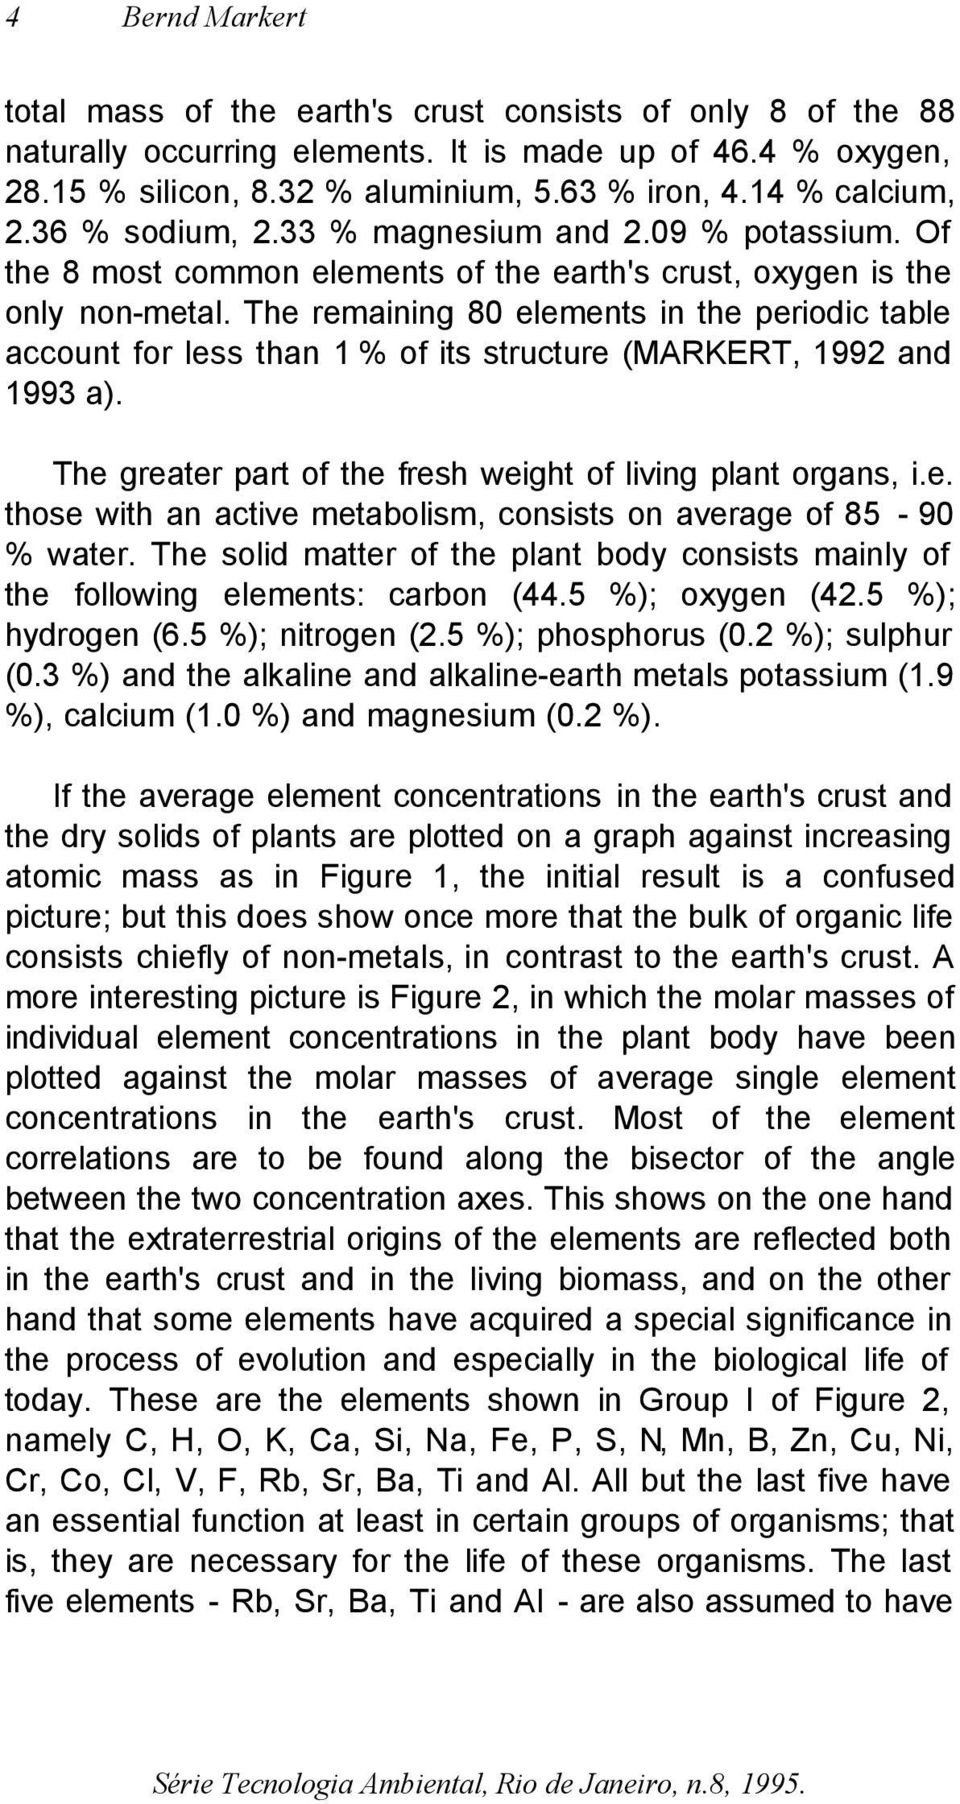 The remaining 80 elements in the periodic table account for less than 1 % of its structure (MARKERT, 1992 and 1993 a). The greater part of the fresh weight of living plant organs, i.e. those with an active metabolism, consists on average of 85-90 % water.